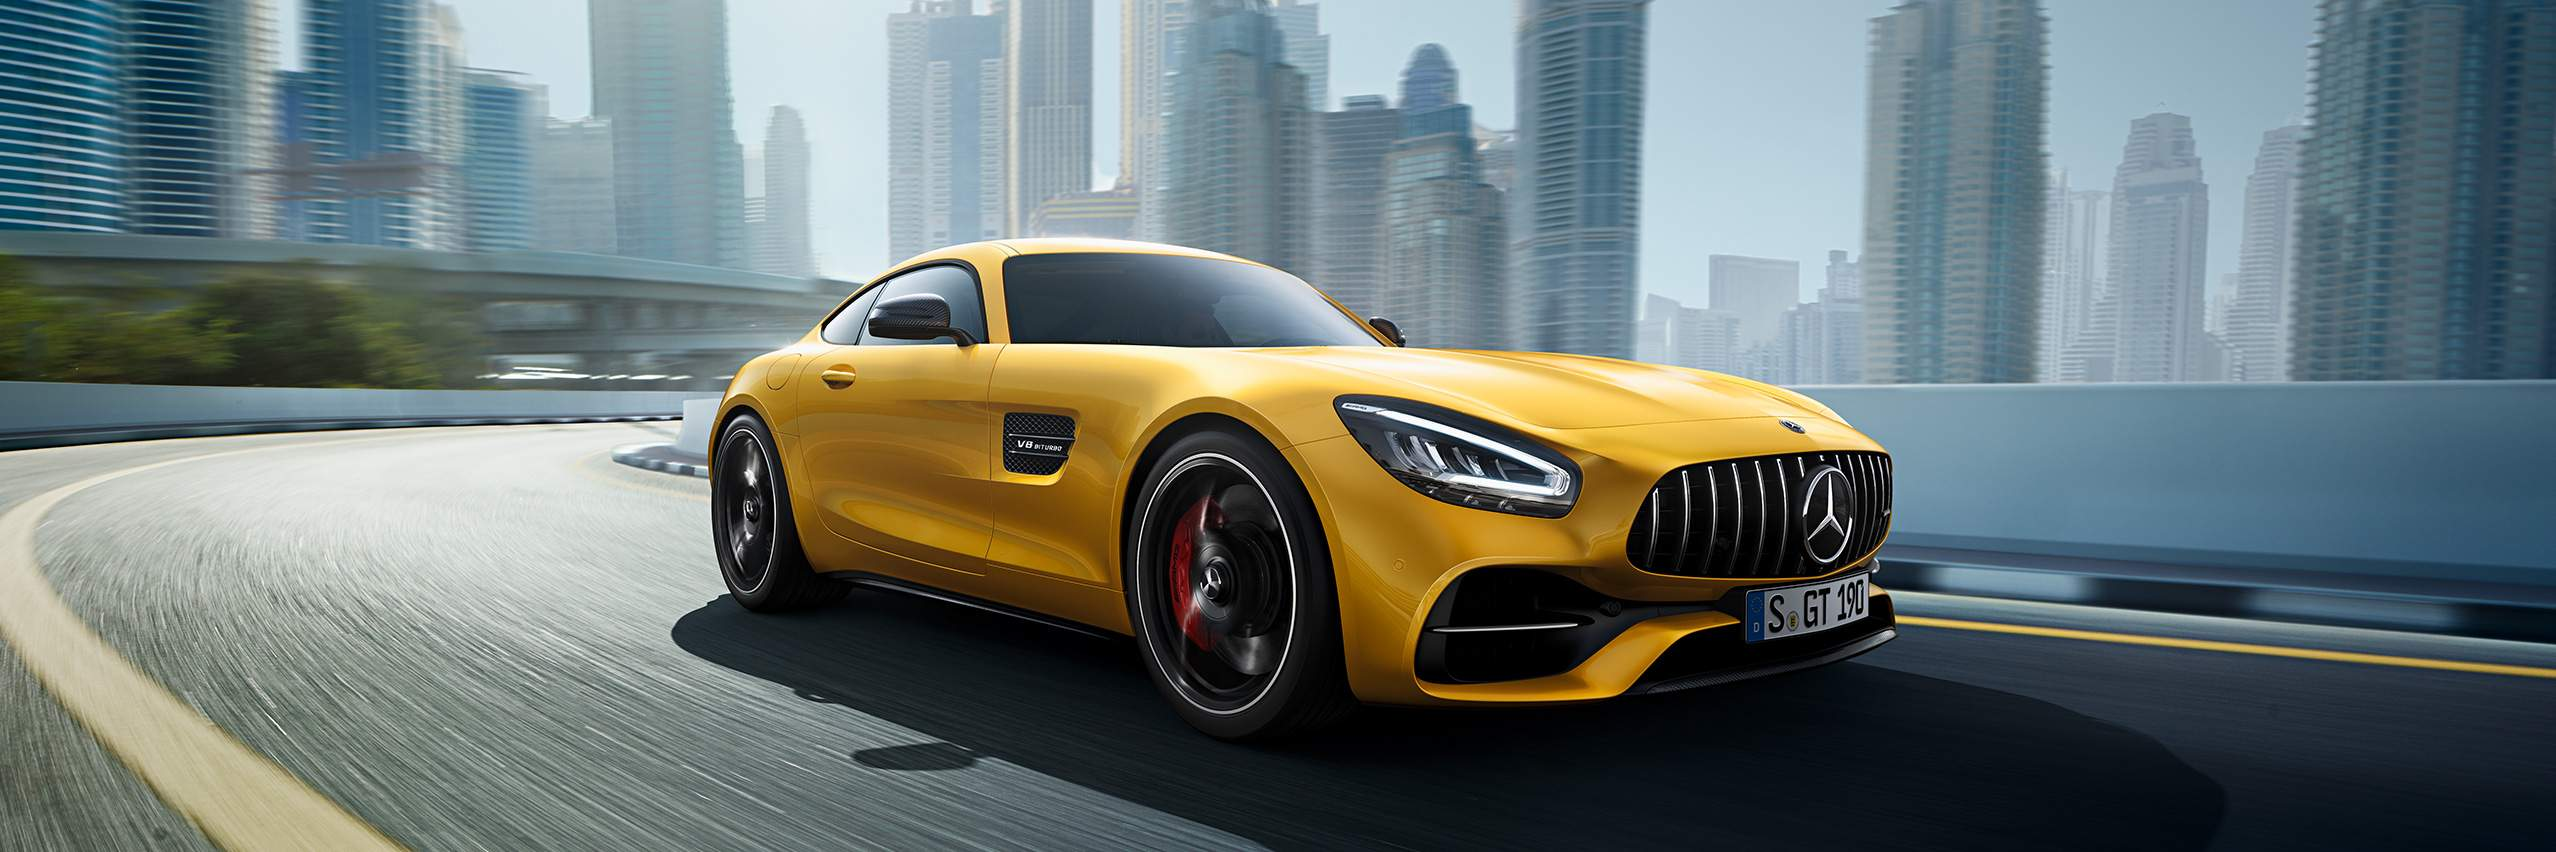 CAR-Avenue-Mercedes-AMG-GT-Coupe-Roadster-07